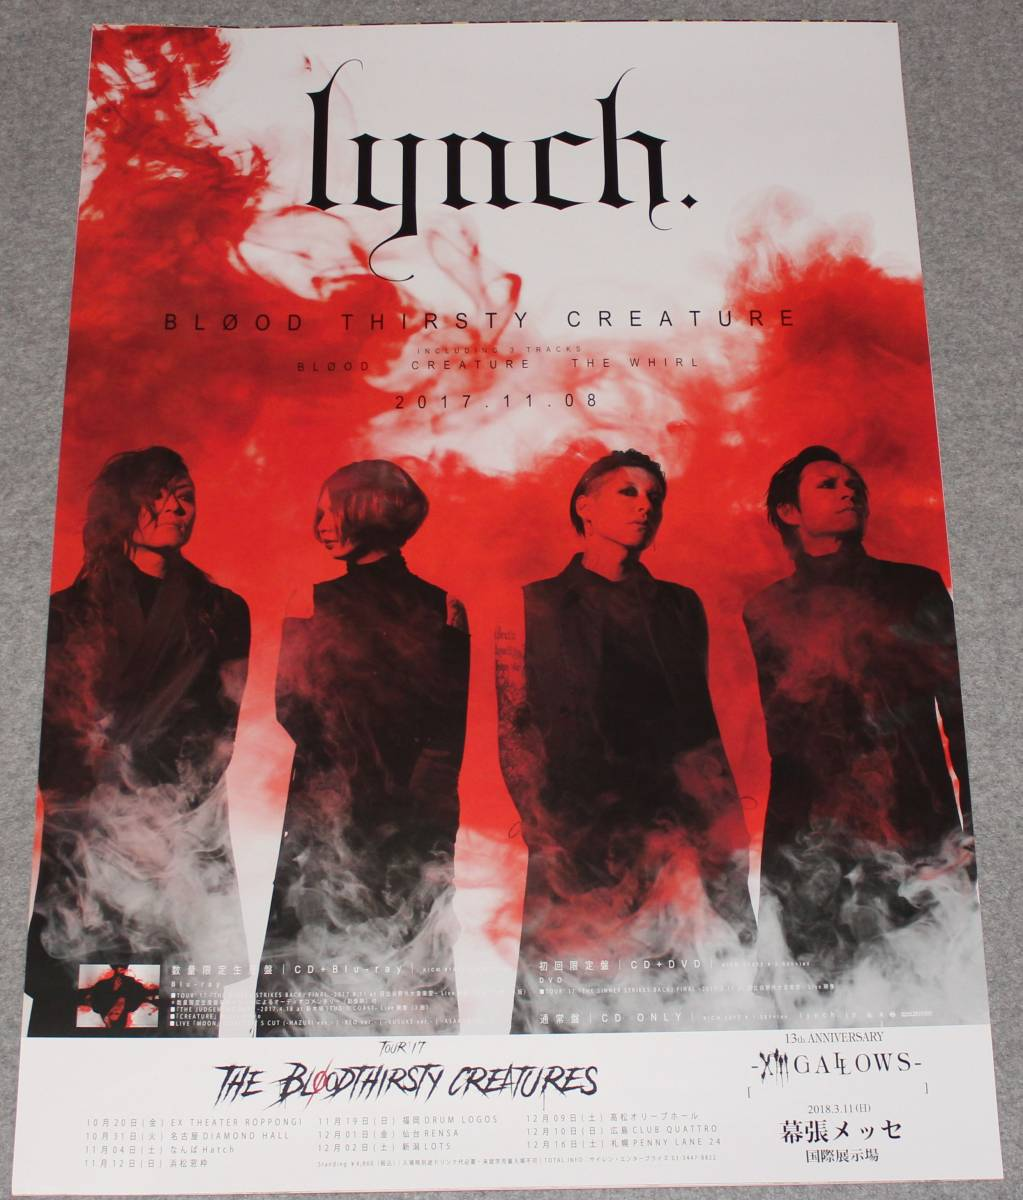 Я1 告知ポスター lynch. [BLOD THIRSTY CREATURE]